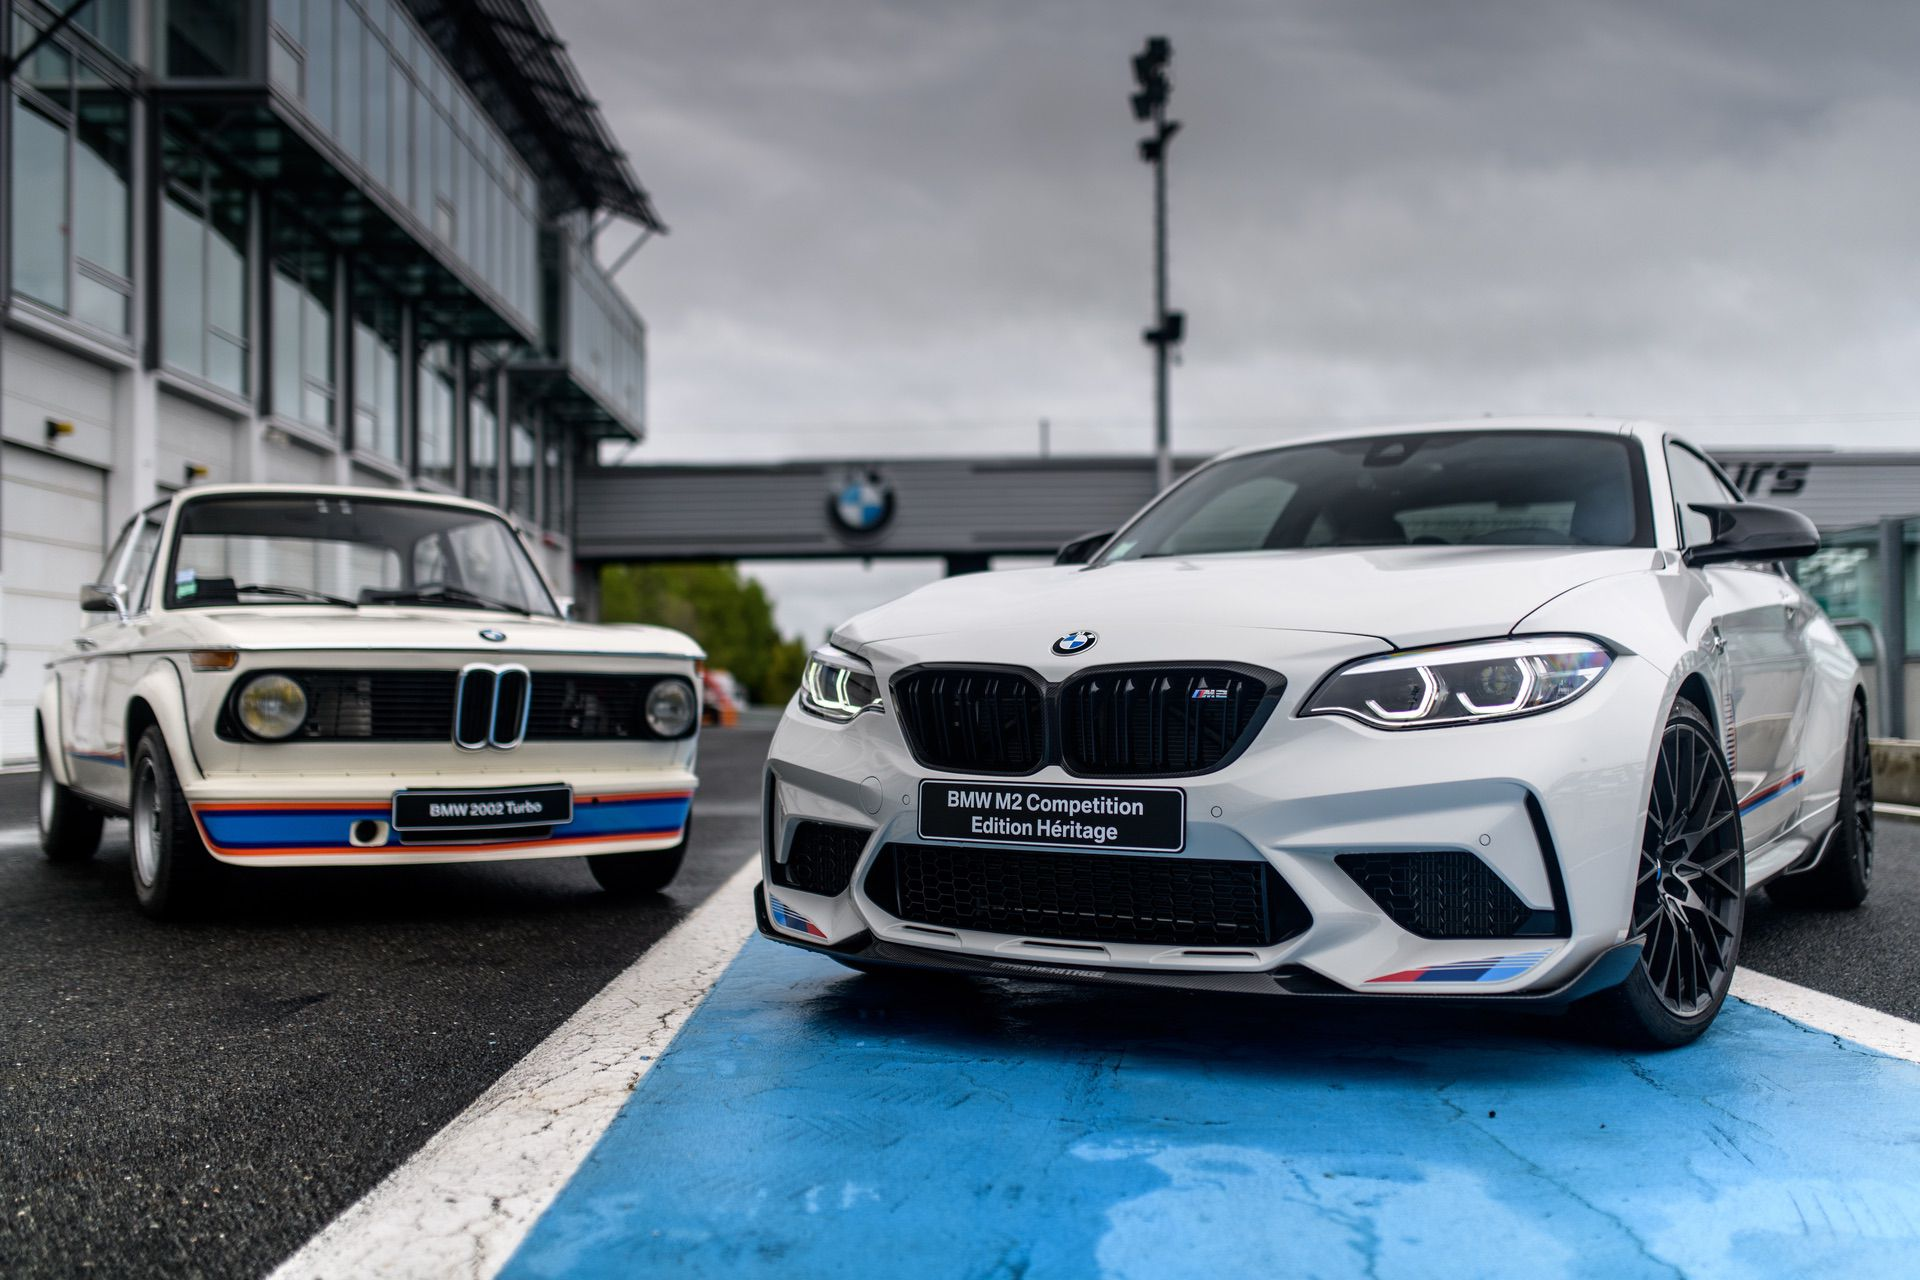 BMW M2 Competition Edition Heritage BMW 2002 Turbo 04